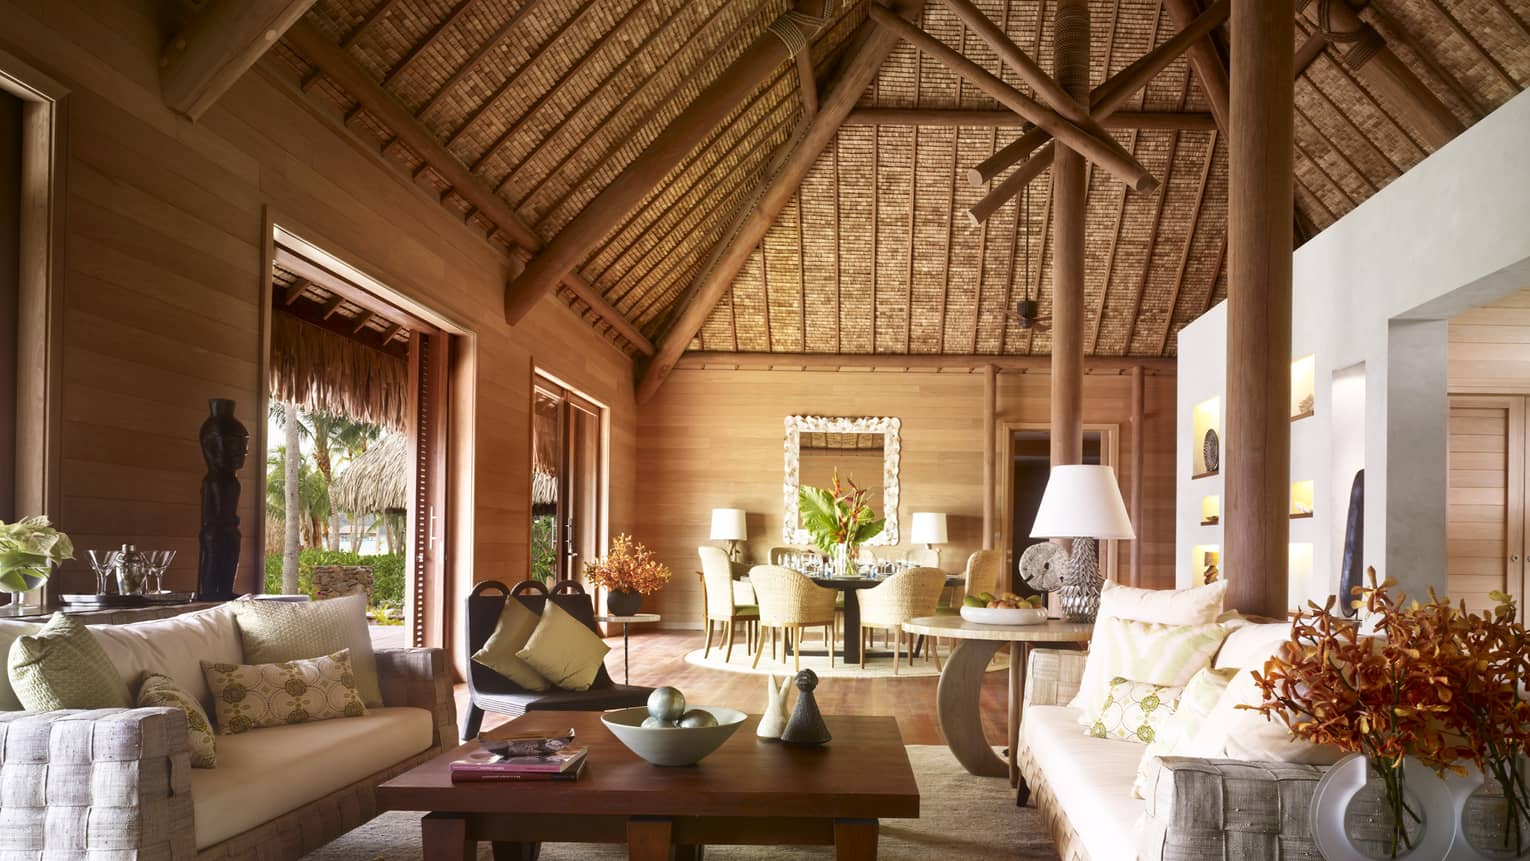 Large, bright bungalow with thatched cathedral ceiling, white sofas, Polynesian art